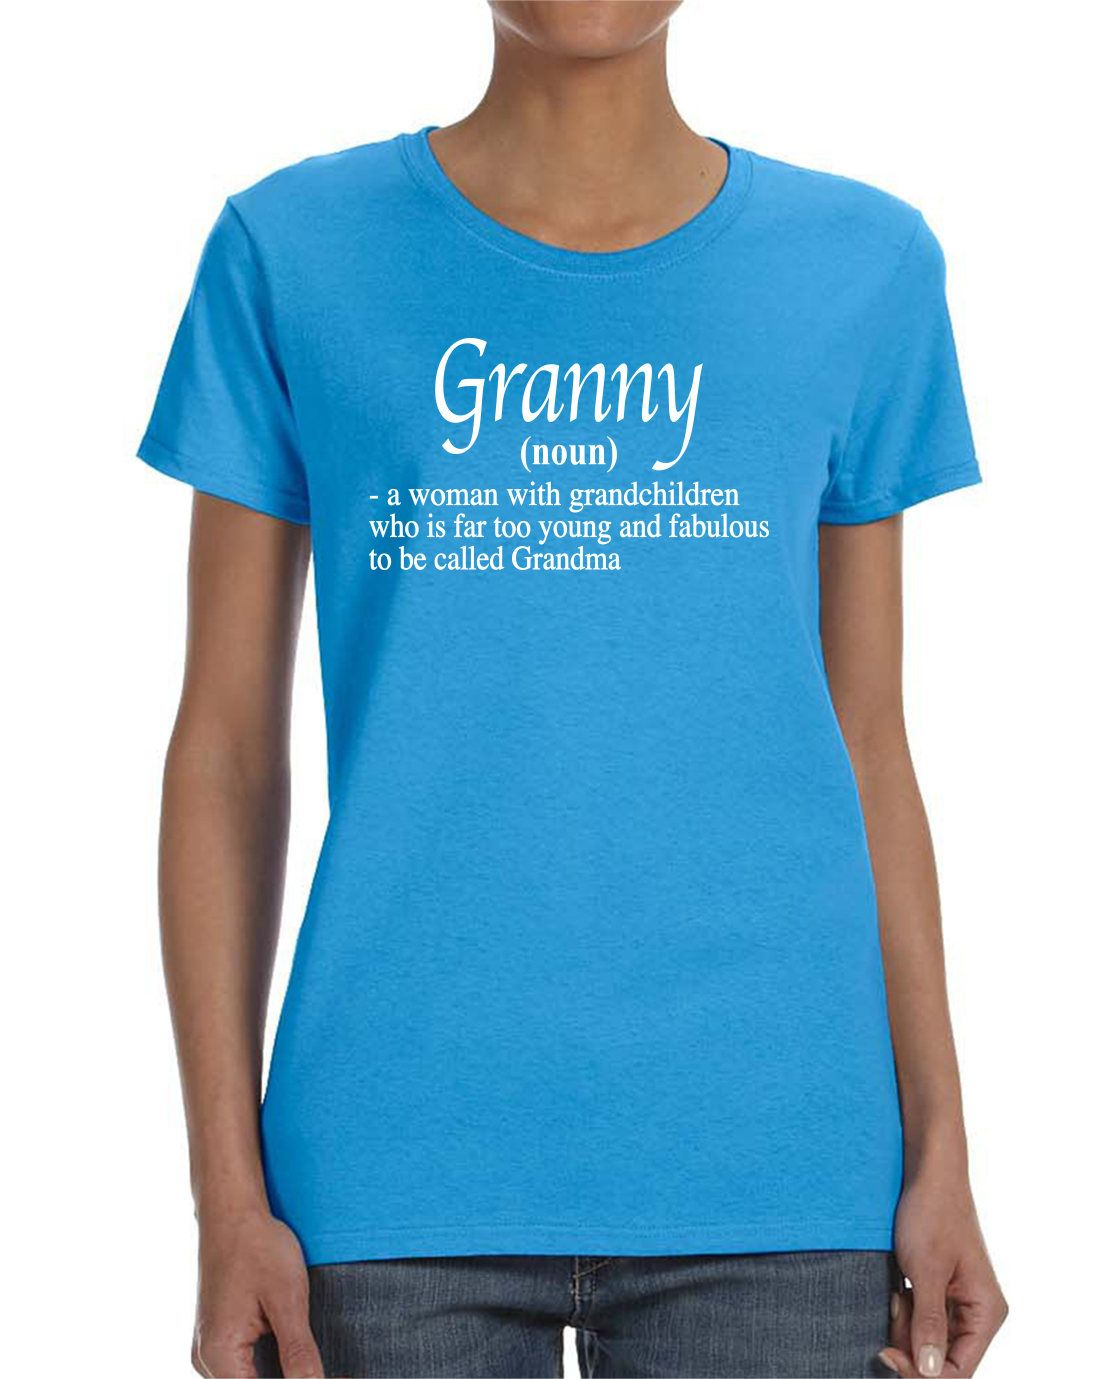 56964a3a7 Grammy Women T-shirt - Grammy Shirt - Gift for Grammy by WildWindApparel on  Etsy